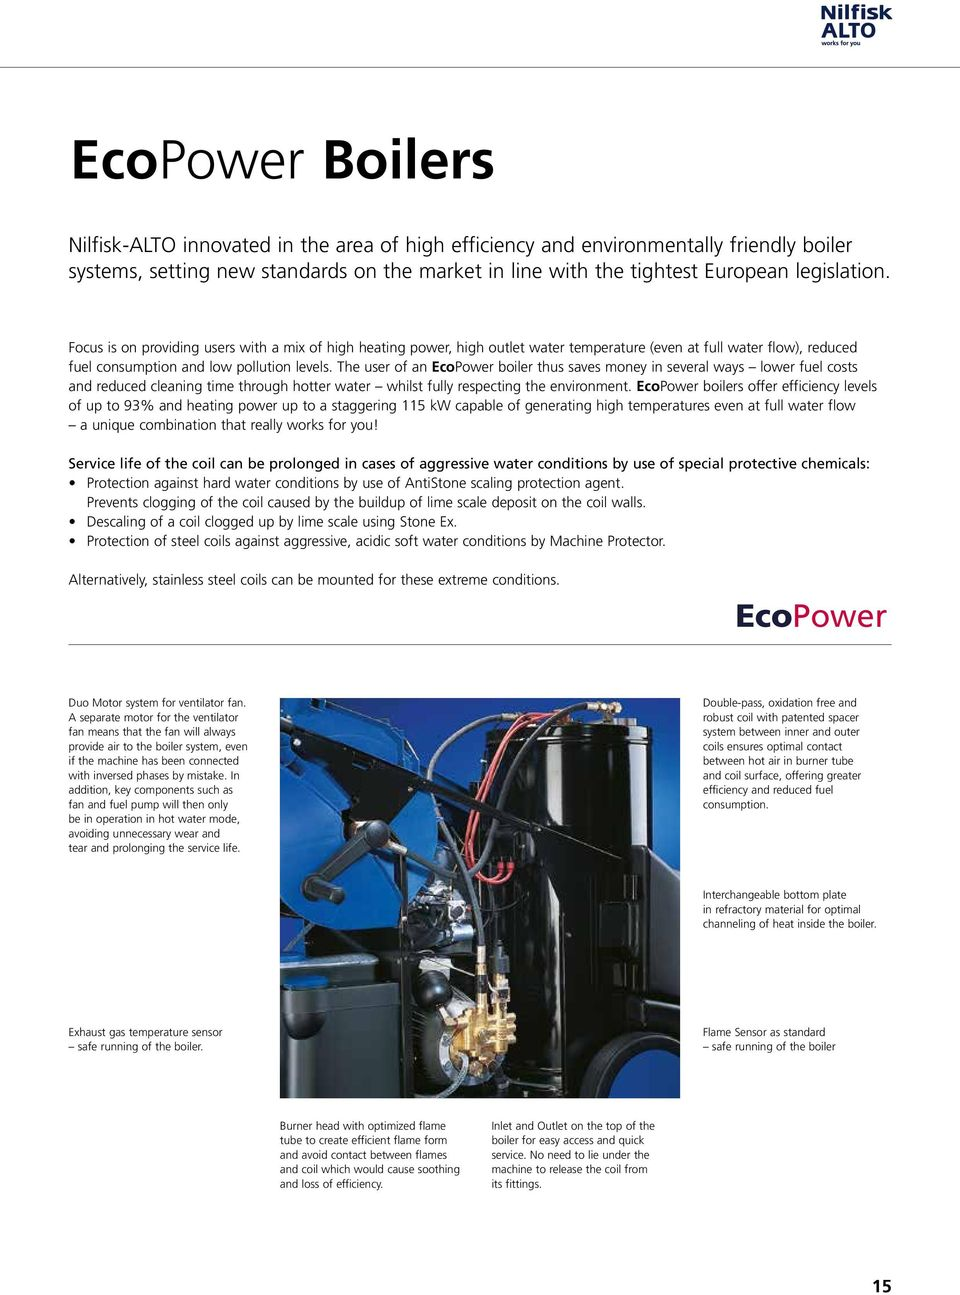 The user of an EcoPower boiler thus saves money in several ways lower fuel costs and reduced cleaning time through hotter water whilst fully respecting the environment.